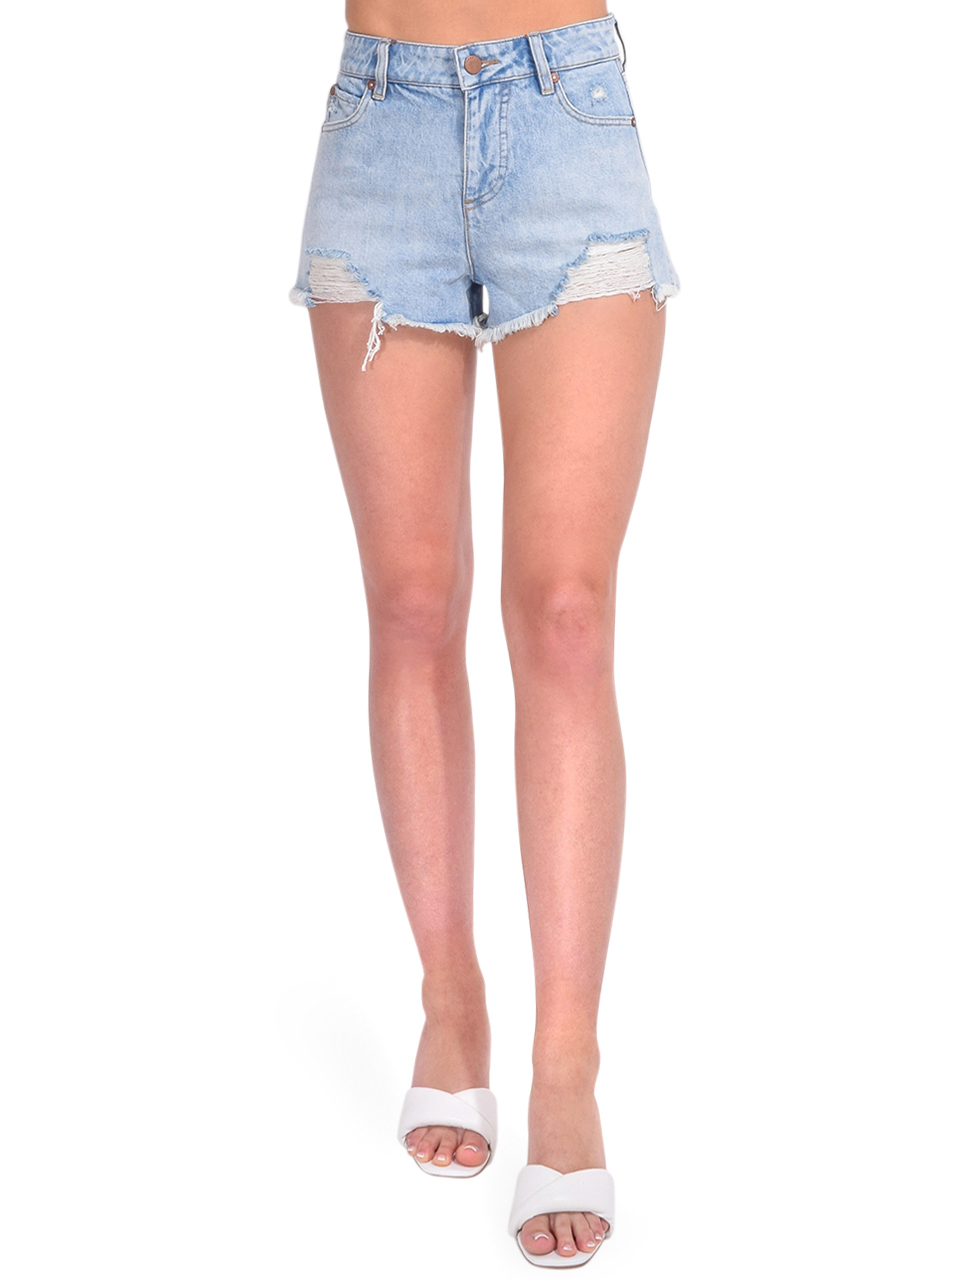 ALICE + OLIVIA Amazing High Rise Vintage Short Front View  x1https://cdn11.bigcommerce.com/s-3wu6n/products/33805/images/112325/DSC_0873_Full__32030.1616458244.244.365.jpg?c=2x2